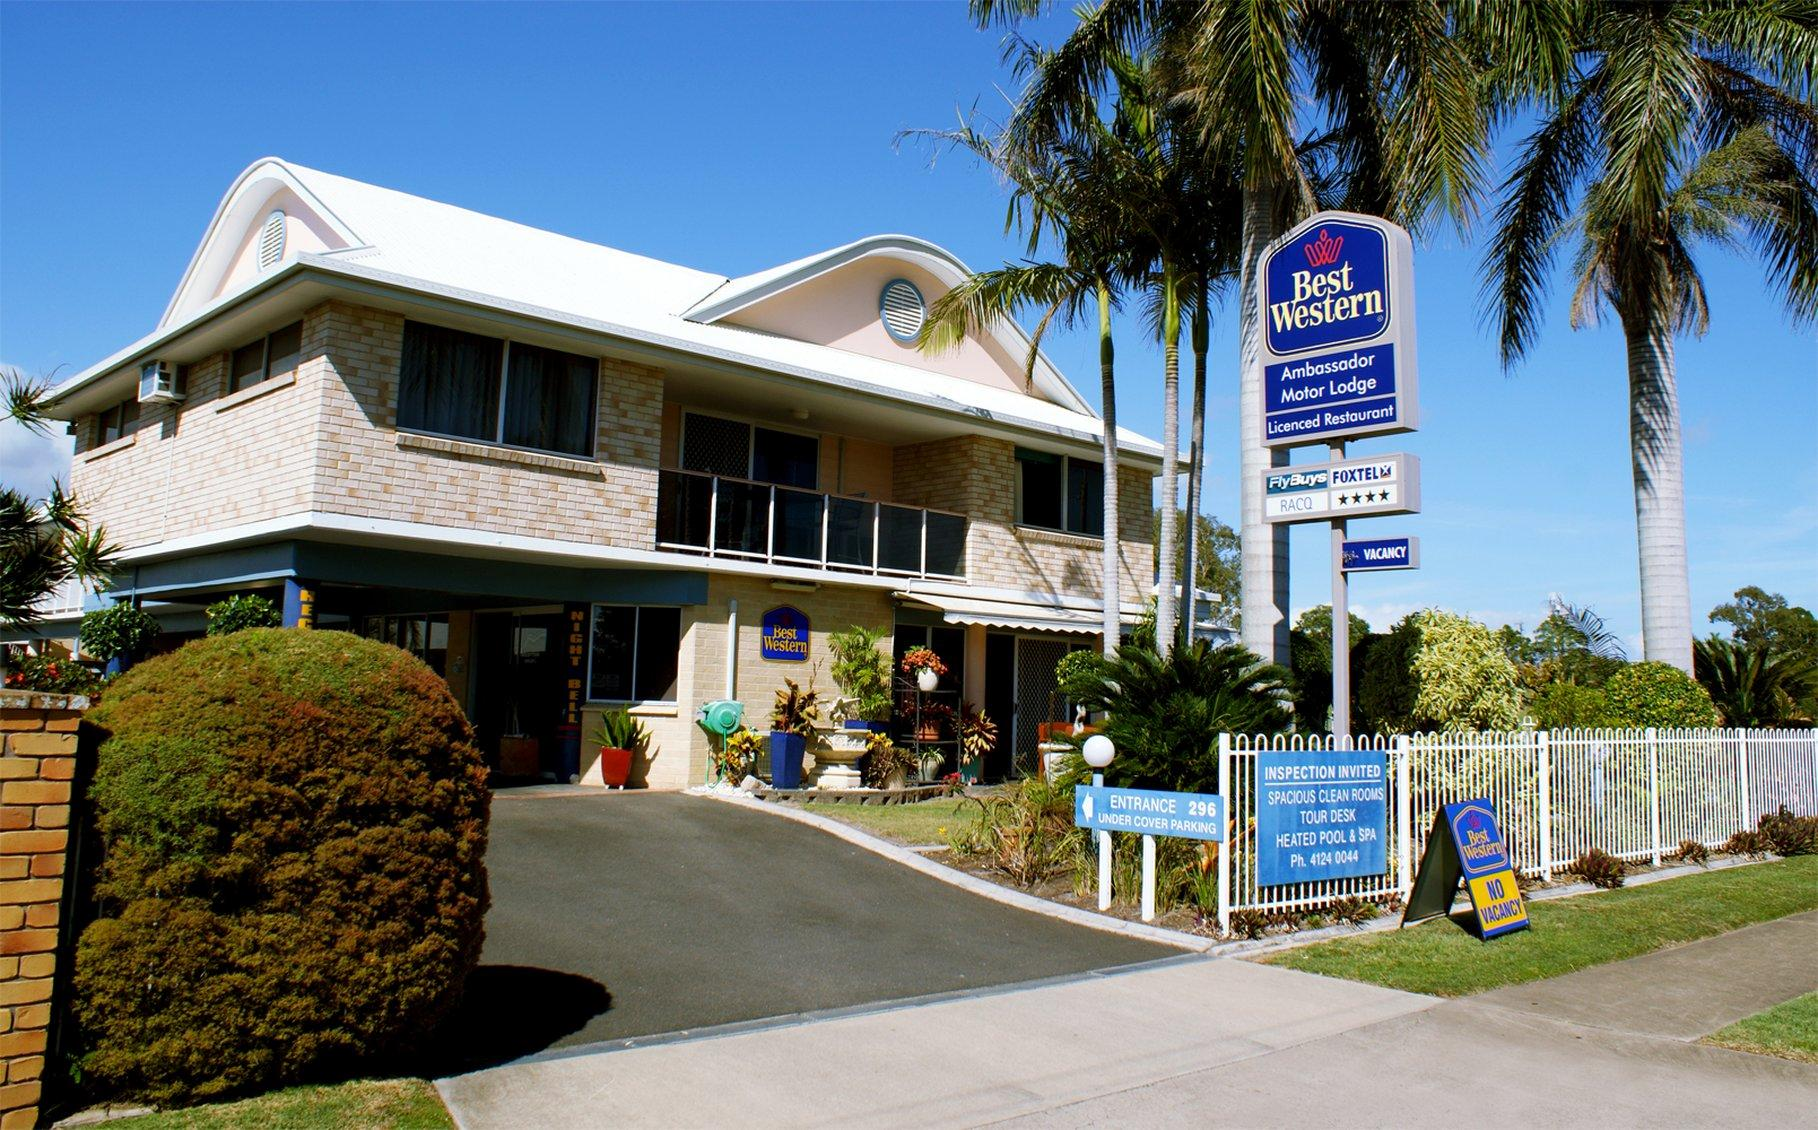 BEST WESTERN Ambassador Motor Lodge